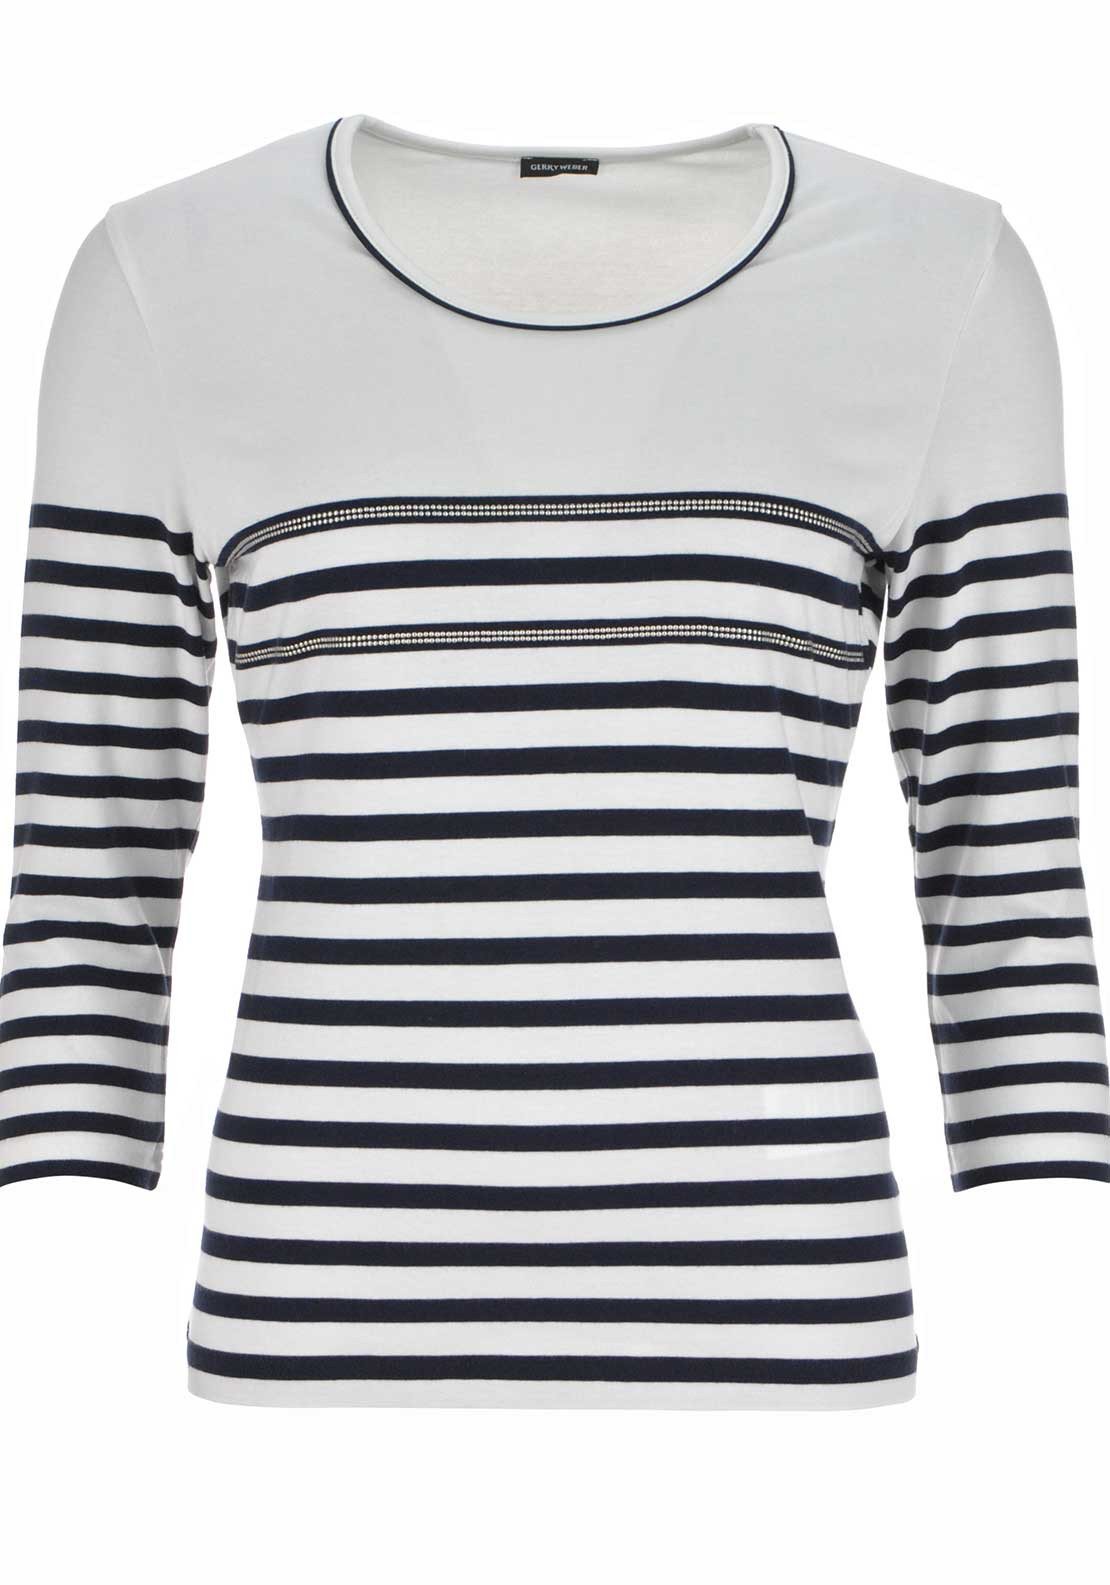 Gerry Weber Striped Cropped Sleeve T-Shirt, Ivory and Navy